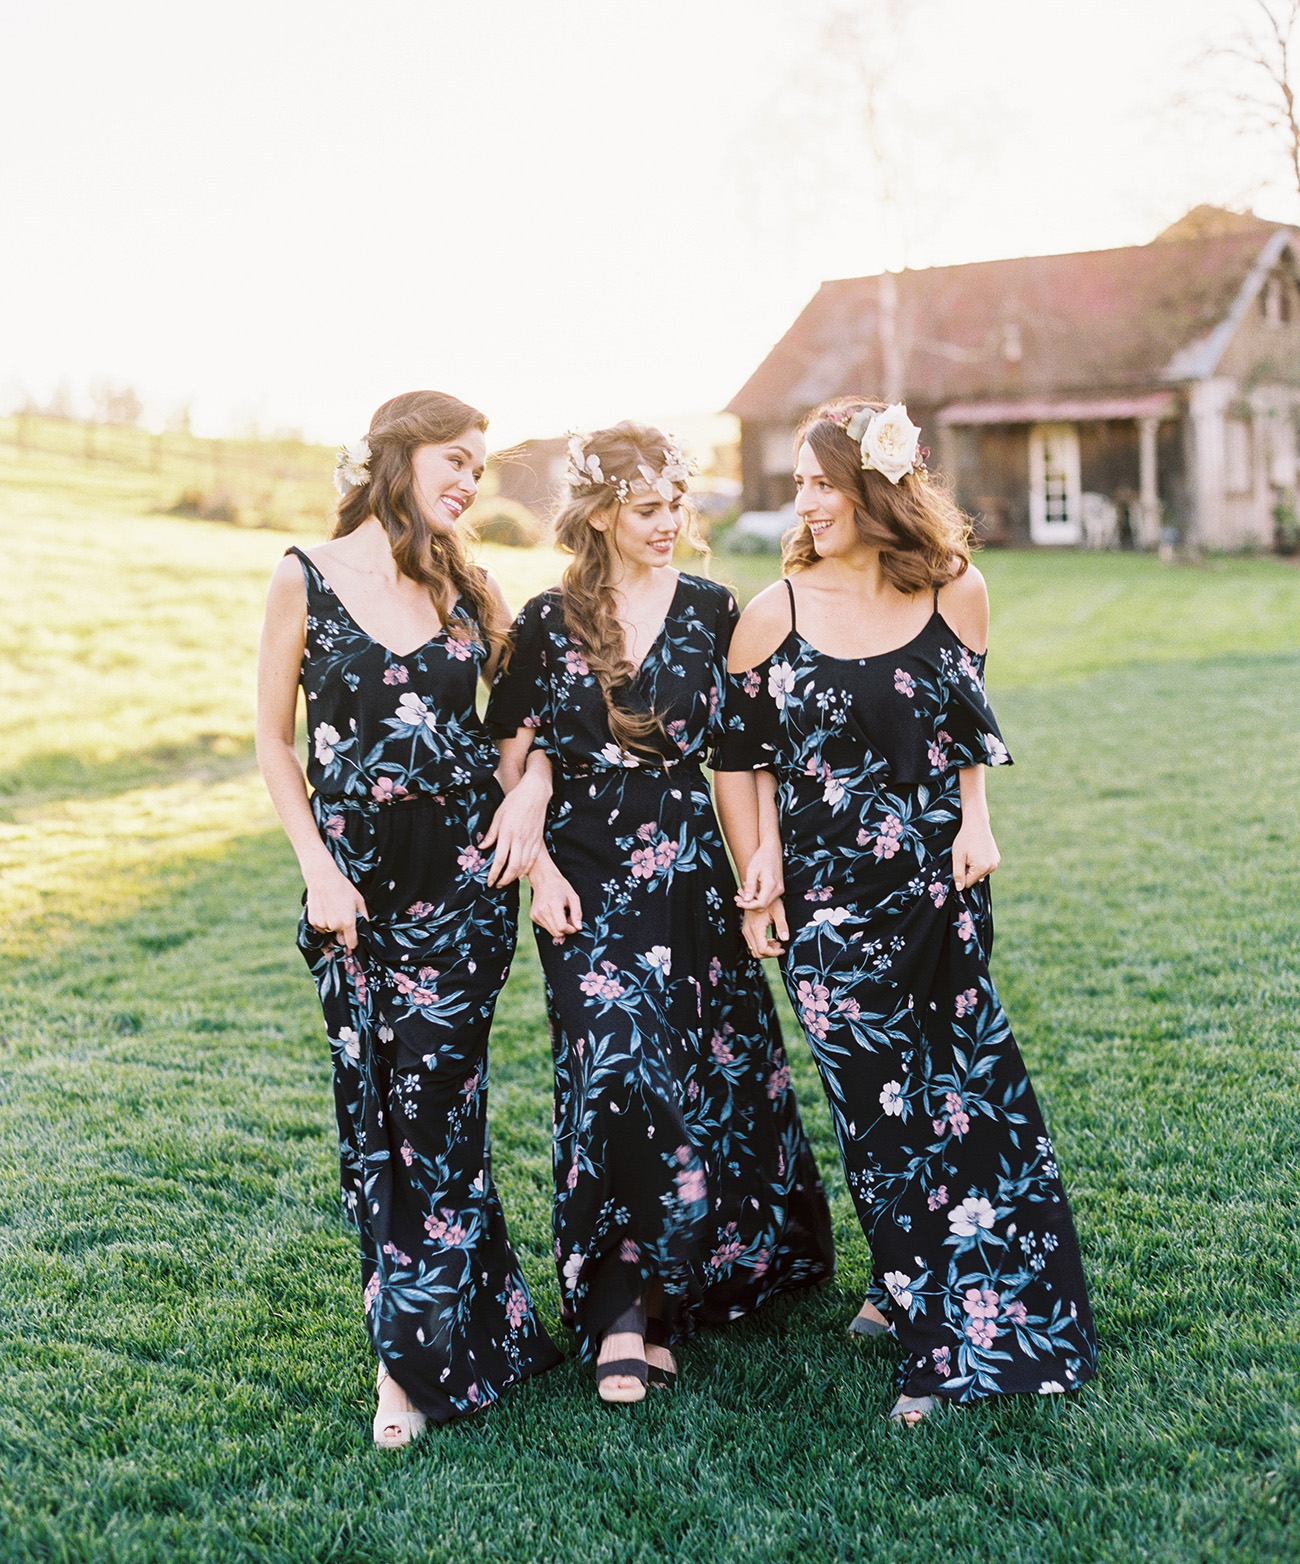 Show Me Your Mumu x Green Wedding Shoes bridesmaids dresses